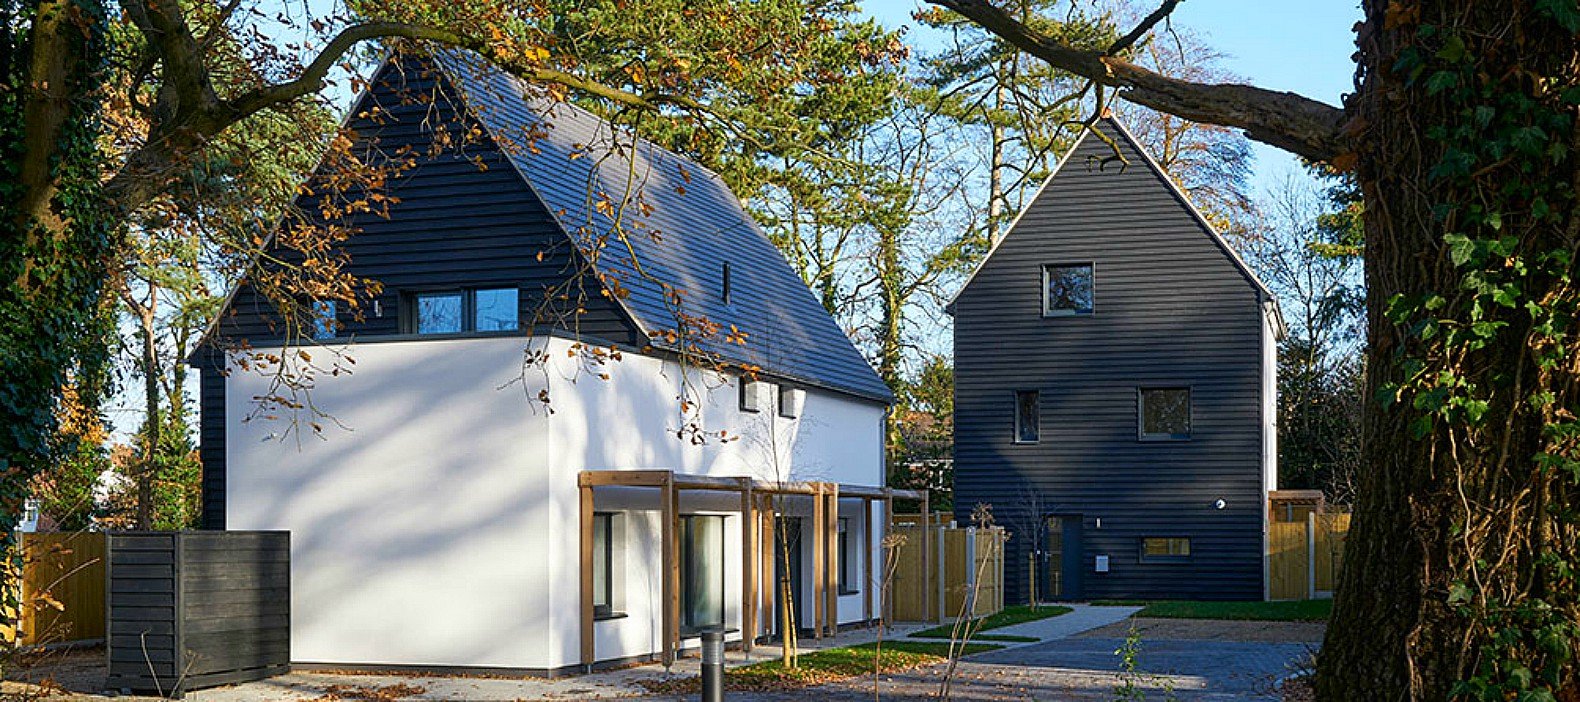 Groundbreaking Passivhaus development features ultra-green homes that you can actually afford